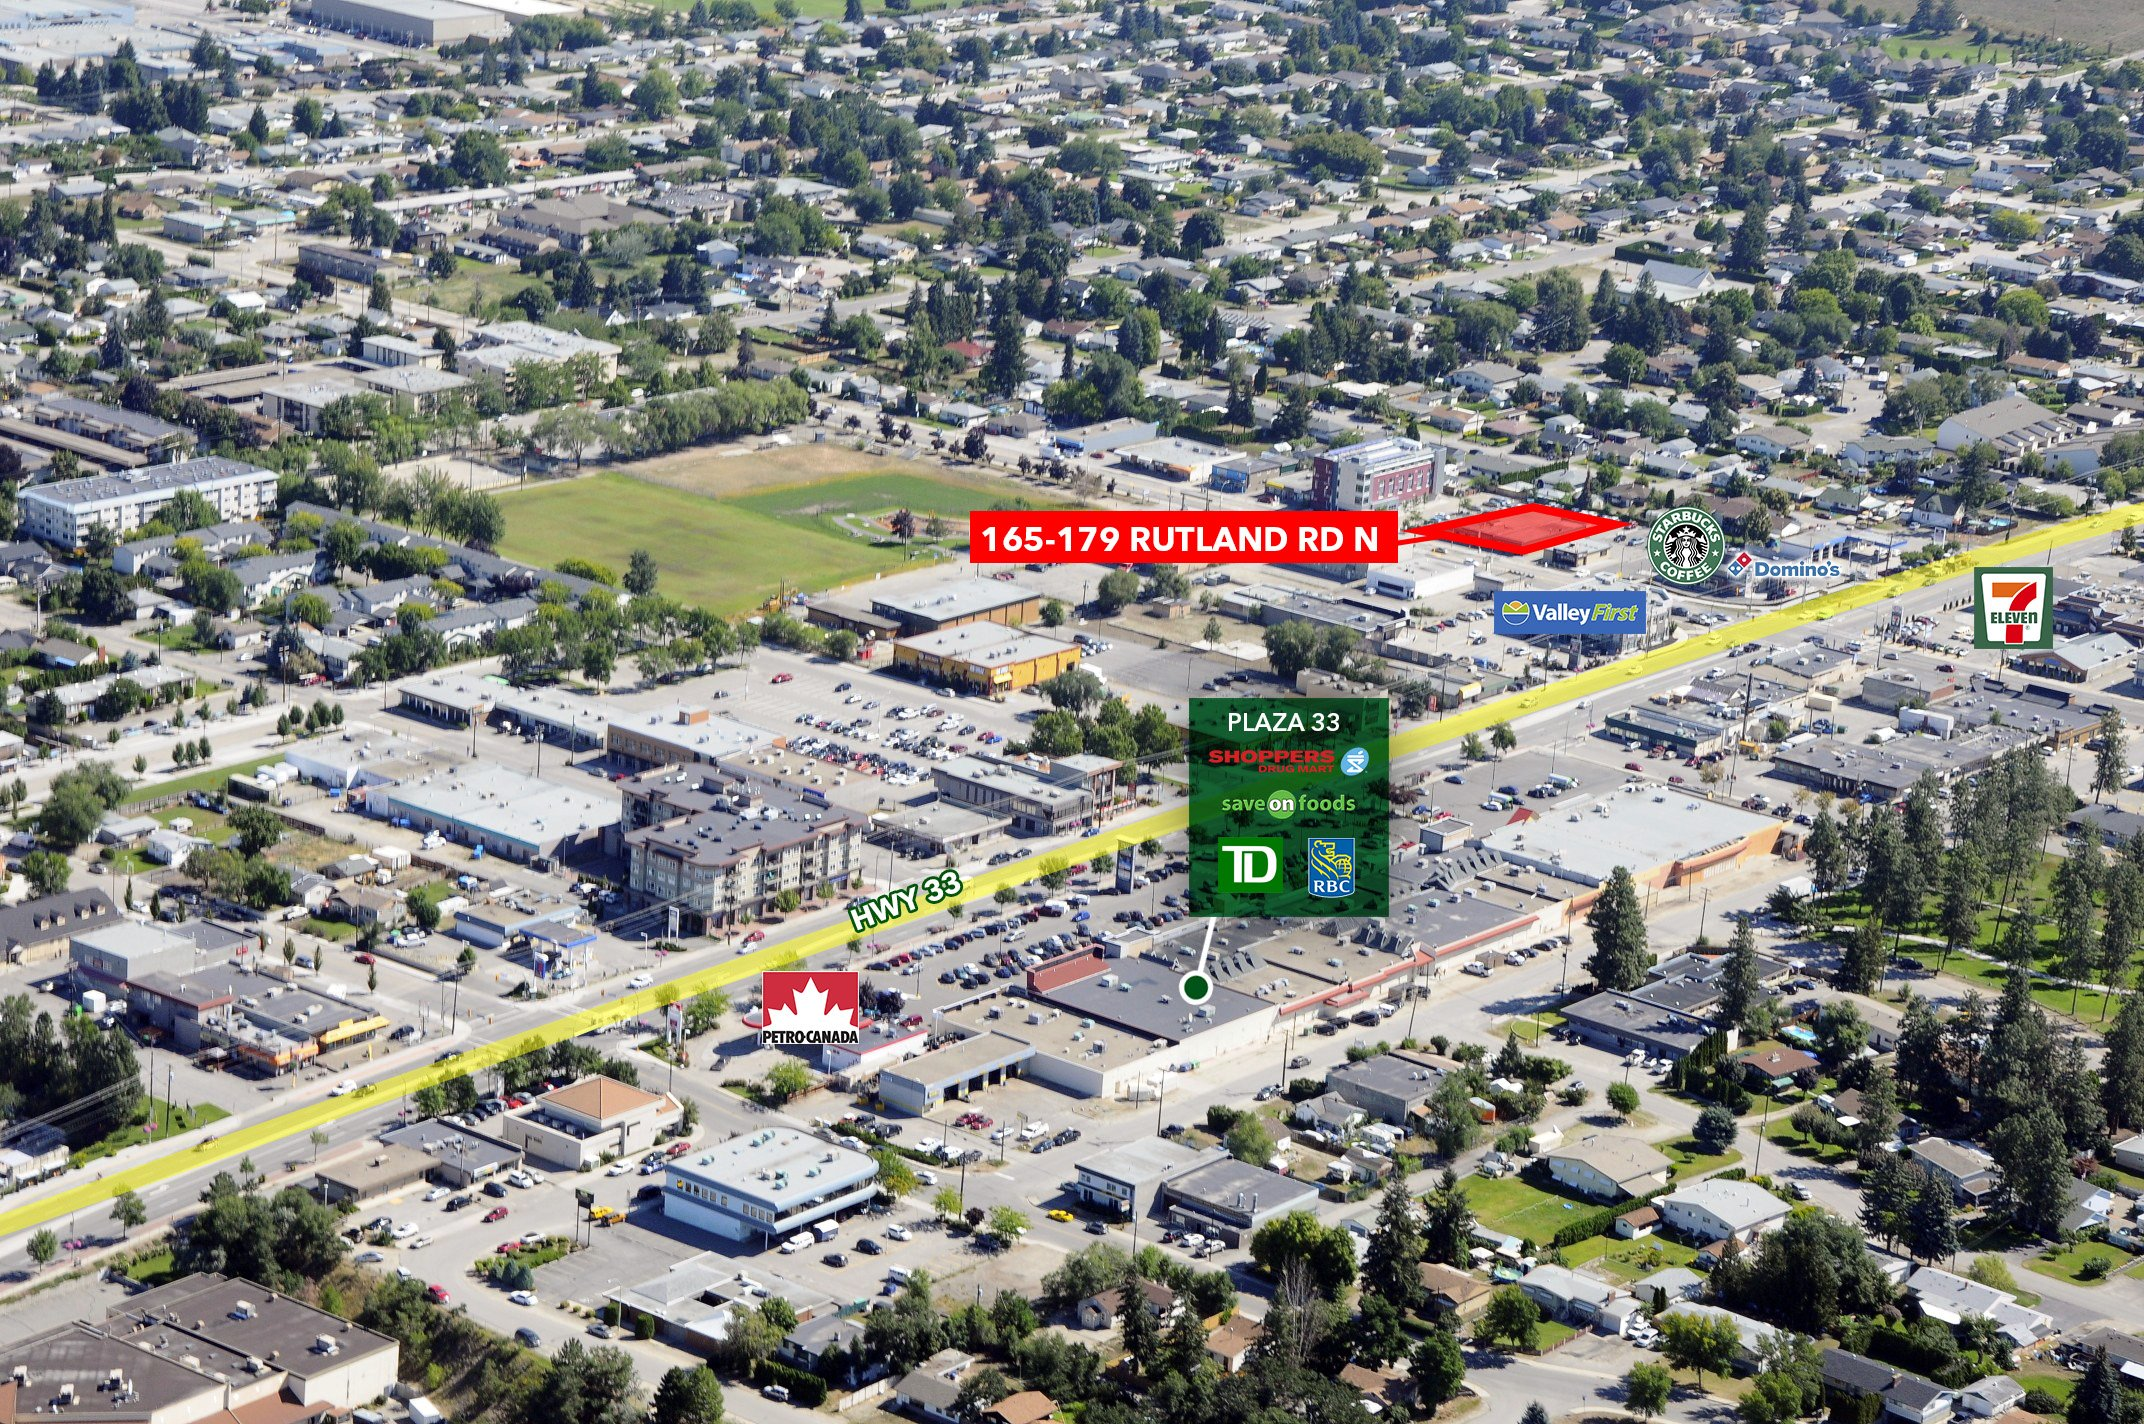 165-179 Rutland Road North, Kelowna, BC - Over Half Acre Redevelopment Site in Rutland